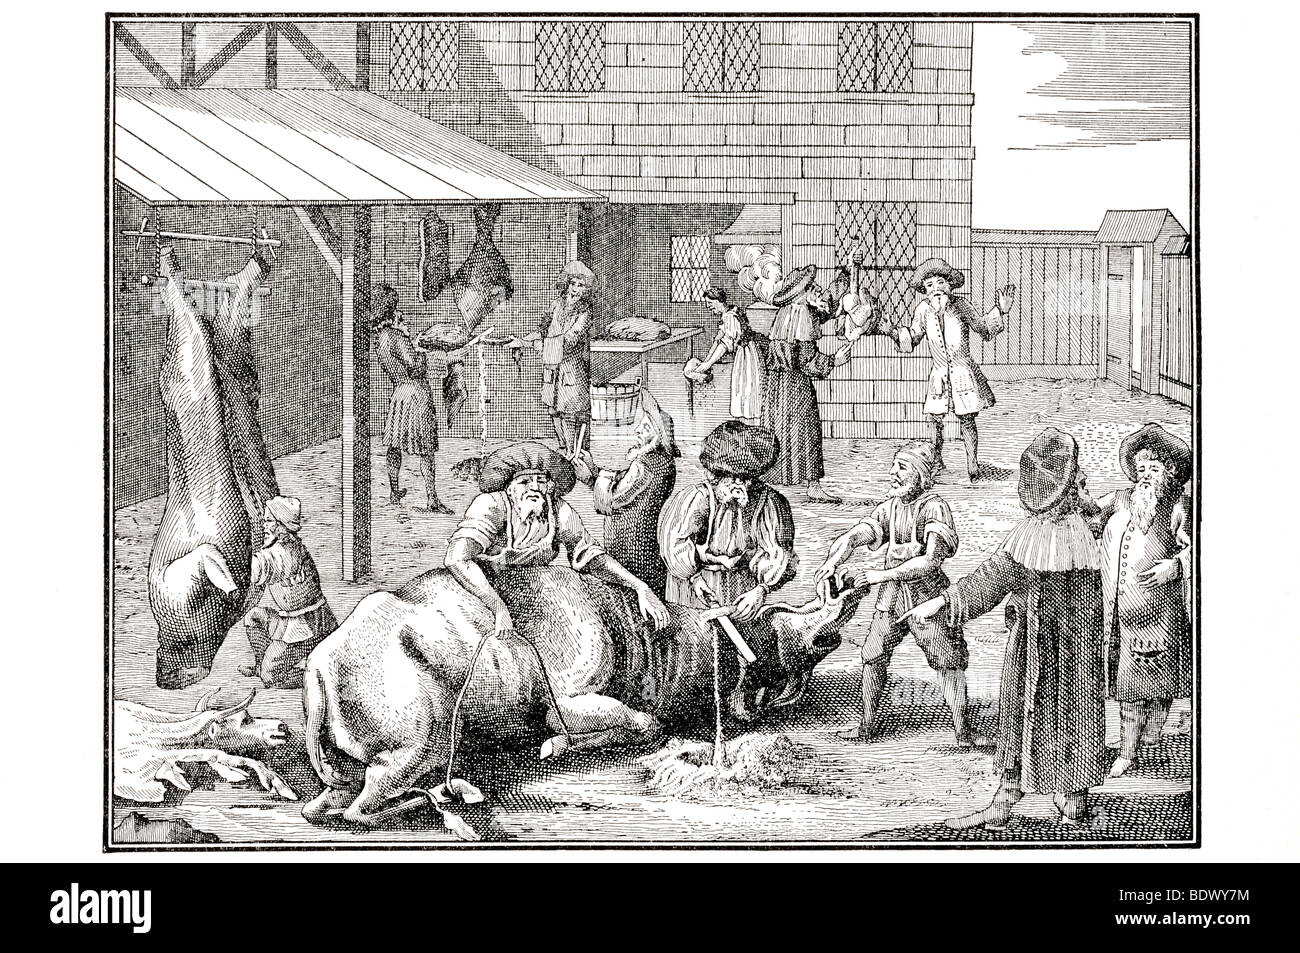 german jewish slaughtering yard of the early eighteenth centuary - Stock Image